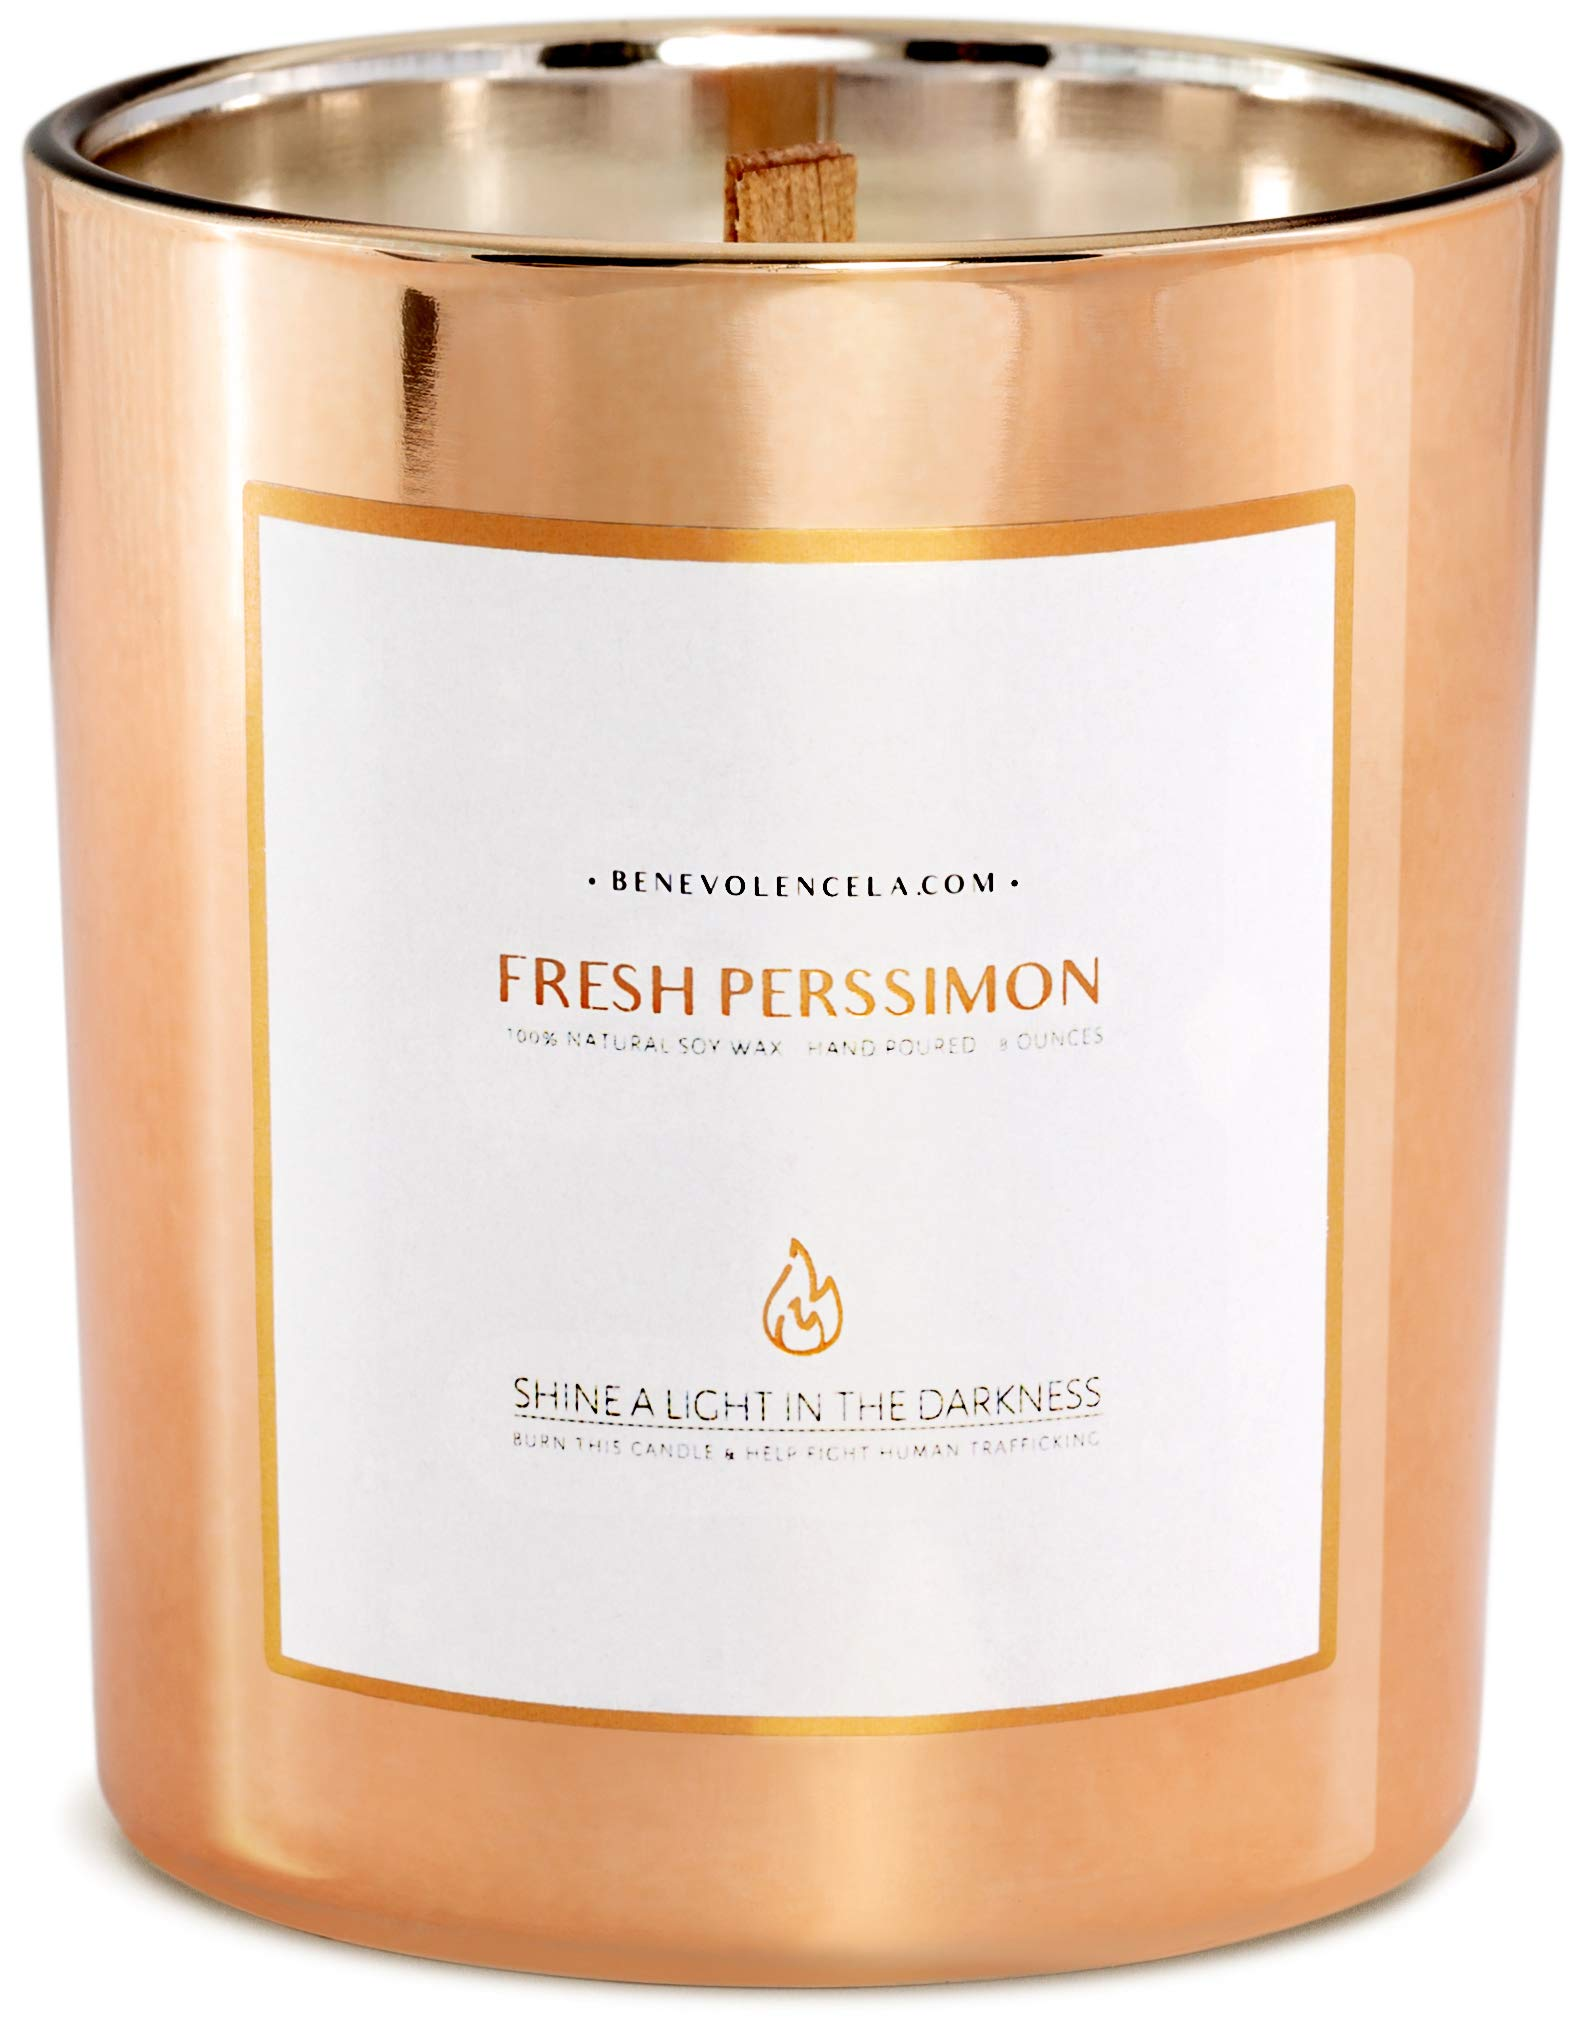 Premium Fresh Persimmon Scented Candles For Home, Sweet Scented Candle, All Natural Soy Candles Scented, 8 oz   45 Hour Long Lasting Soy Candle, Soothing Aromatherapy Candles in Rose Gold Glass Jar